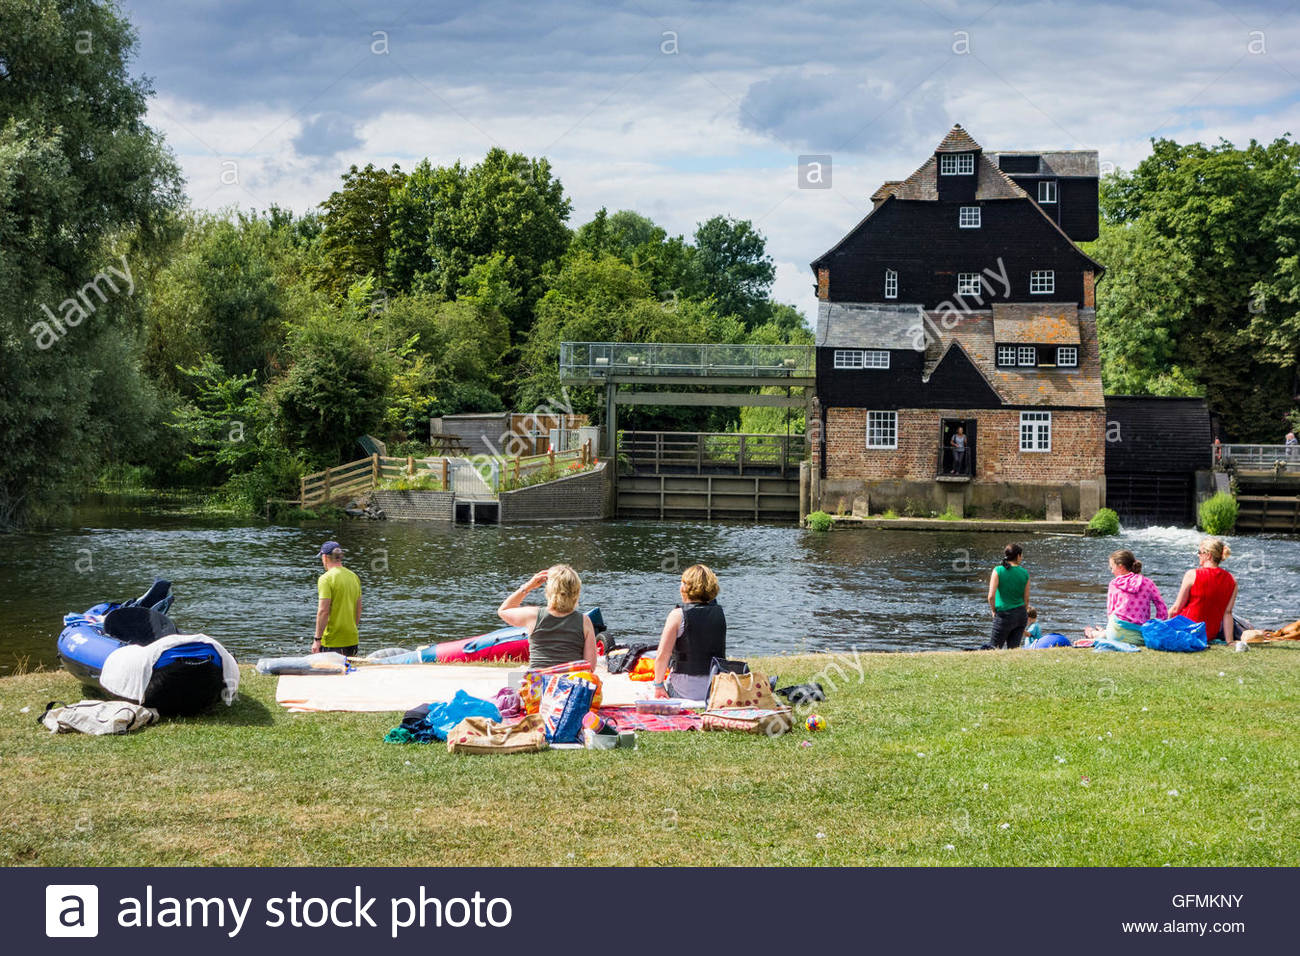 Houghton, Cambridgeshire, UK. 31st July, 2016. People picnicking by the River Great Ouse, in sight of Houghton Water - Stock Image